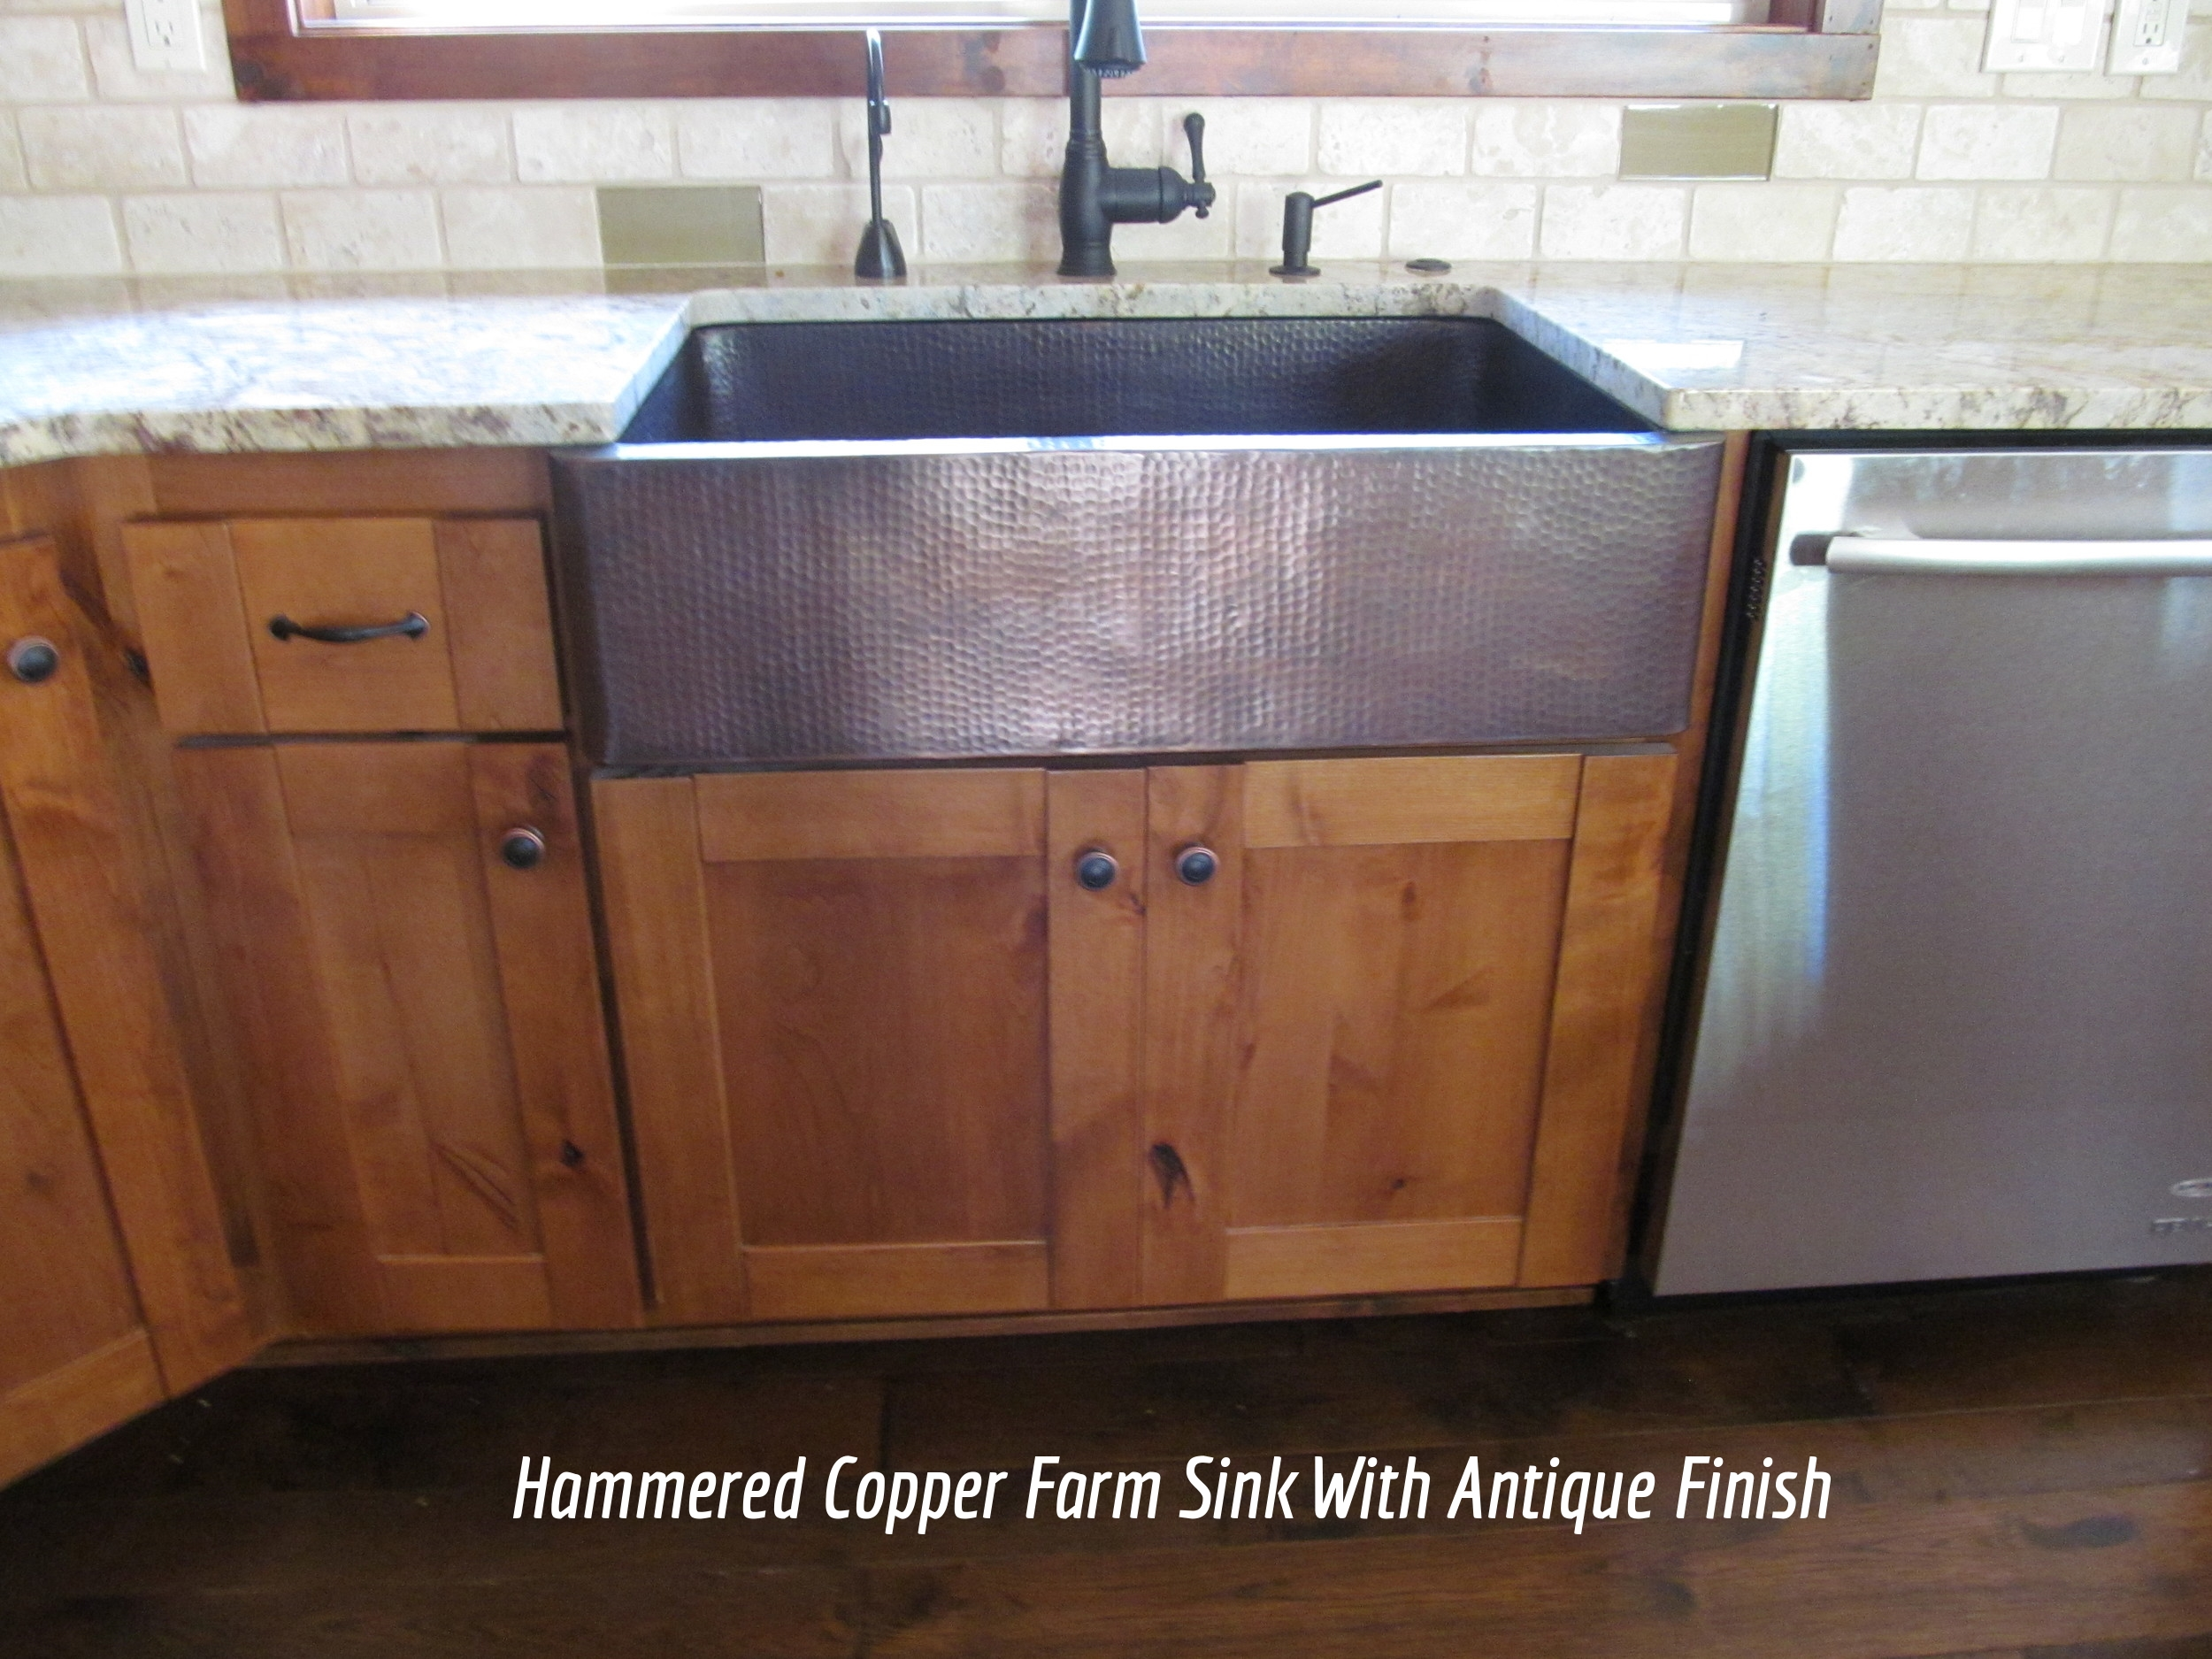 Hammered Copper Farm Sink With Antique Finish